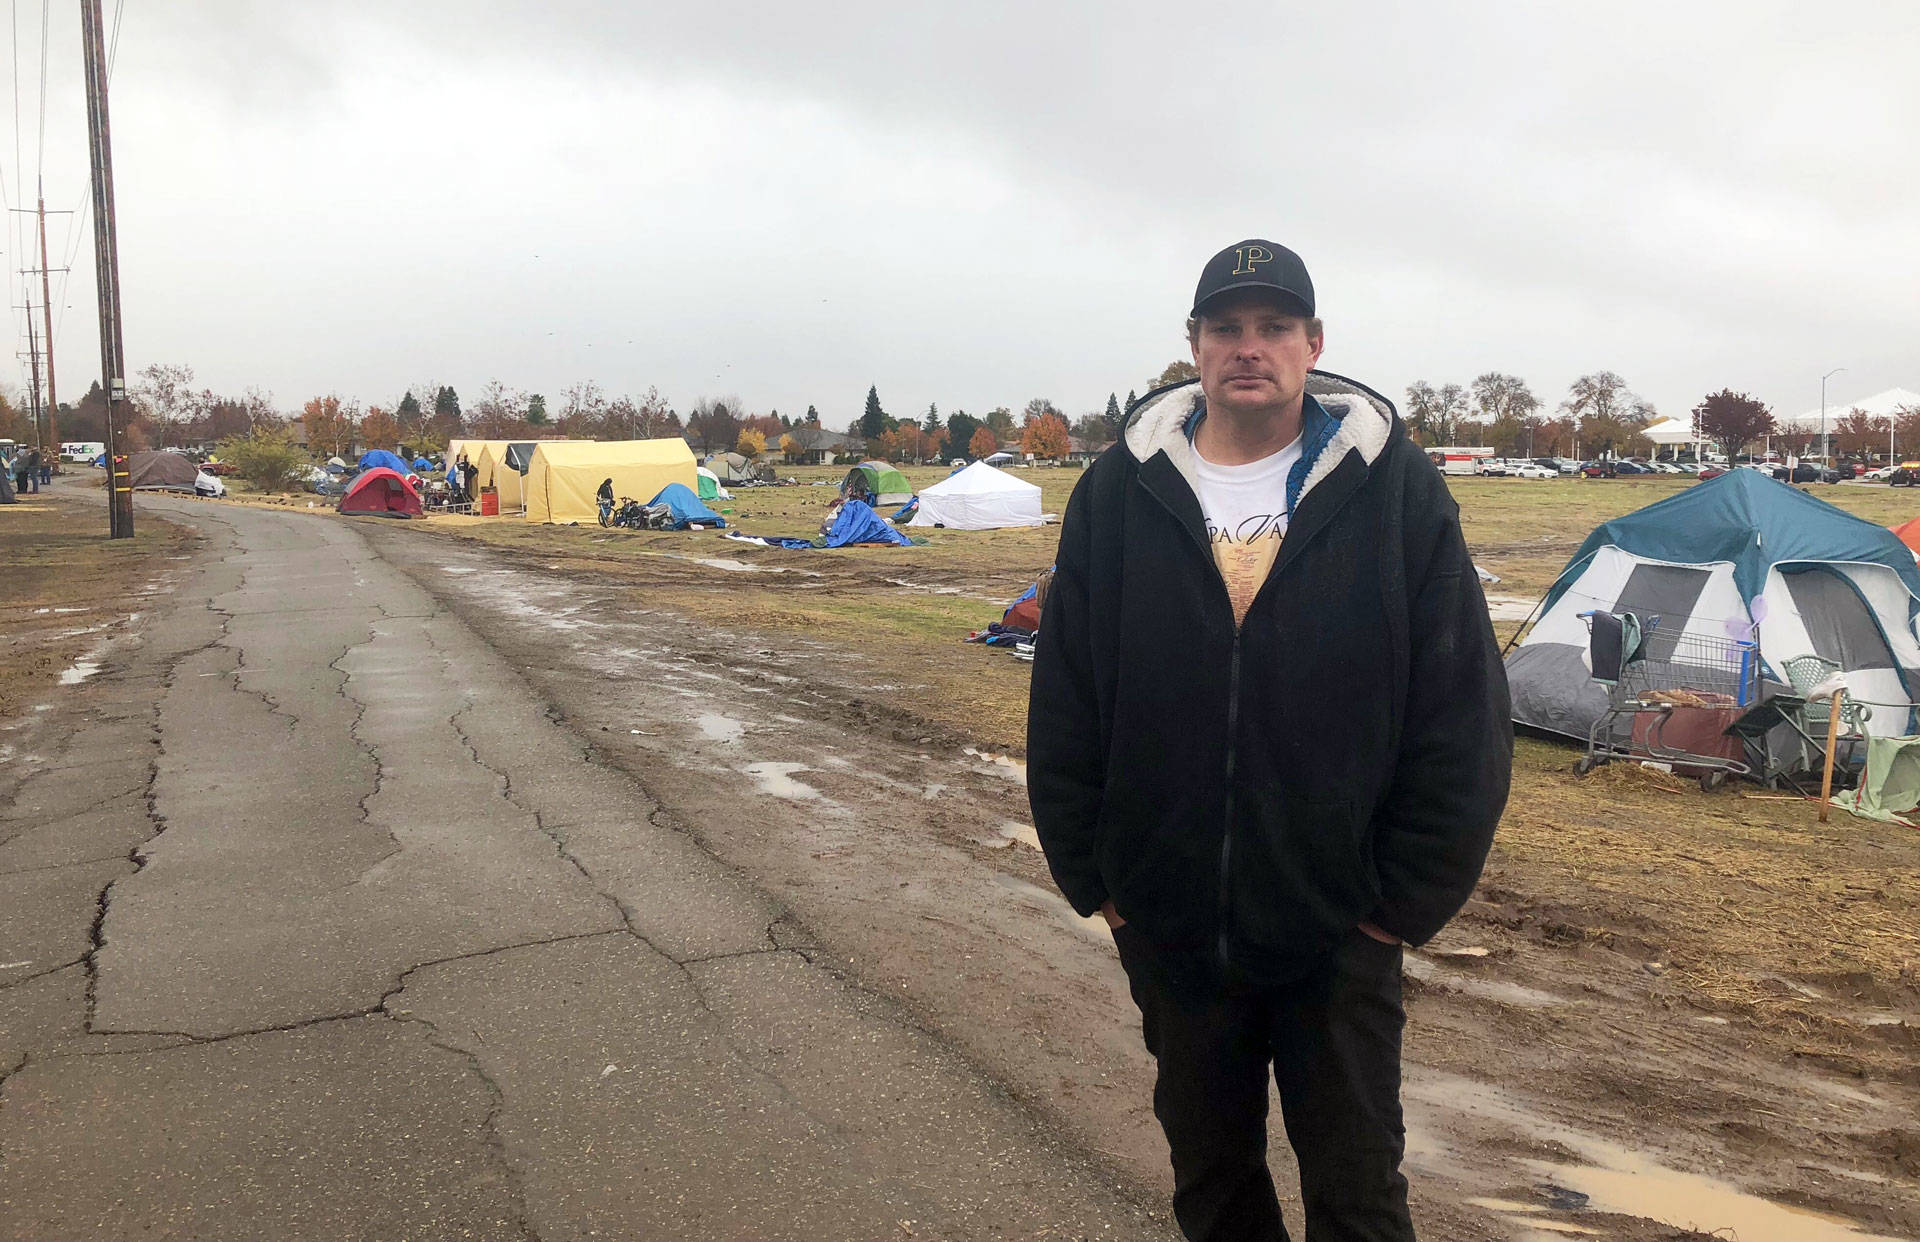 Ulis Gordon stands by several dozen tents outside a Chico Walmart where some Camp Fire survivors are staying. Sonja Hutson/KQED